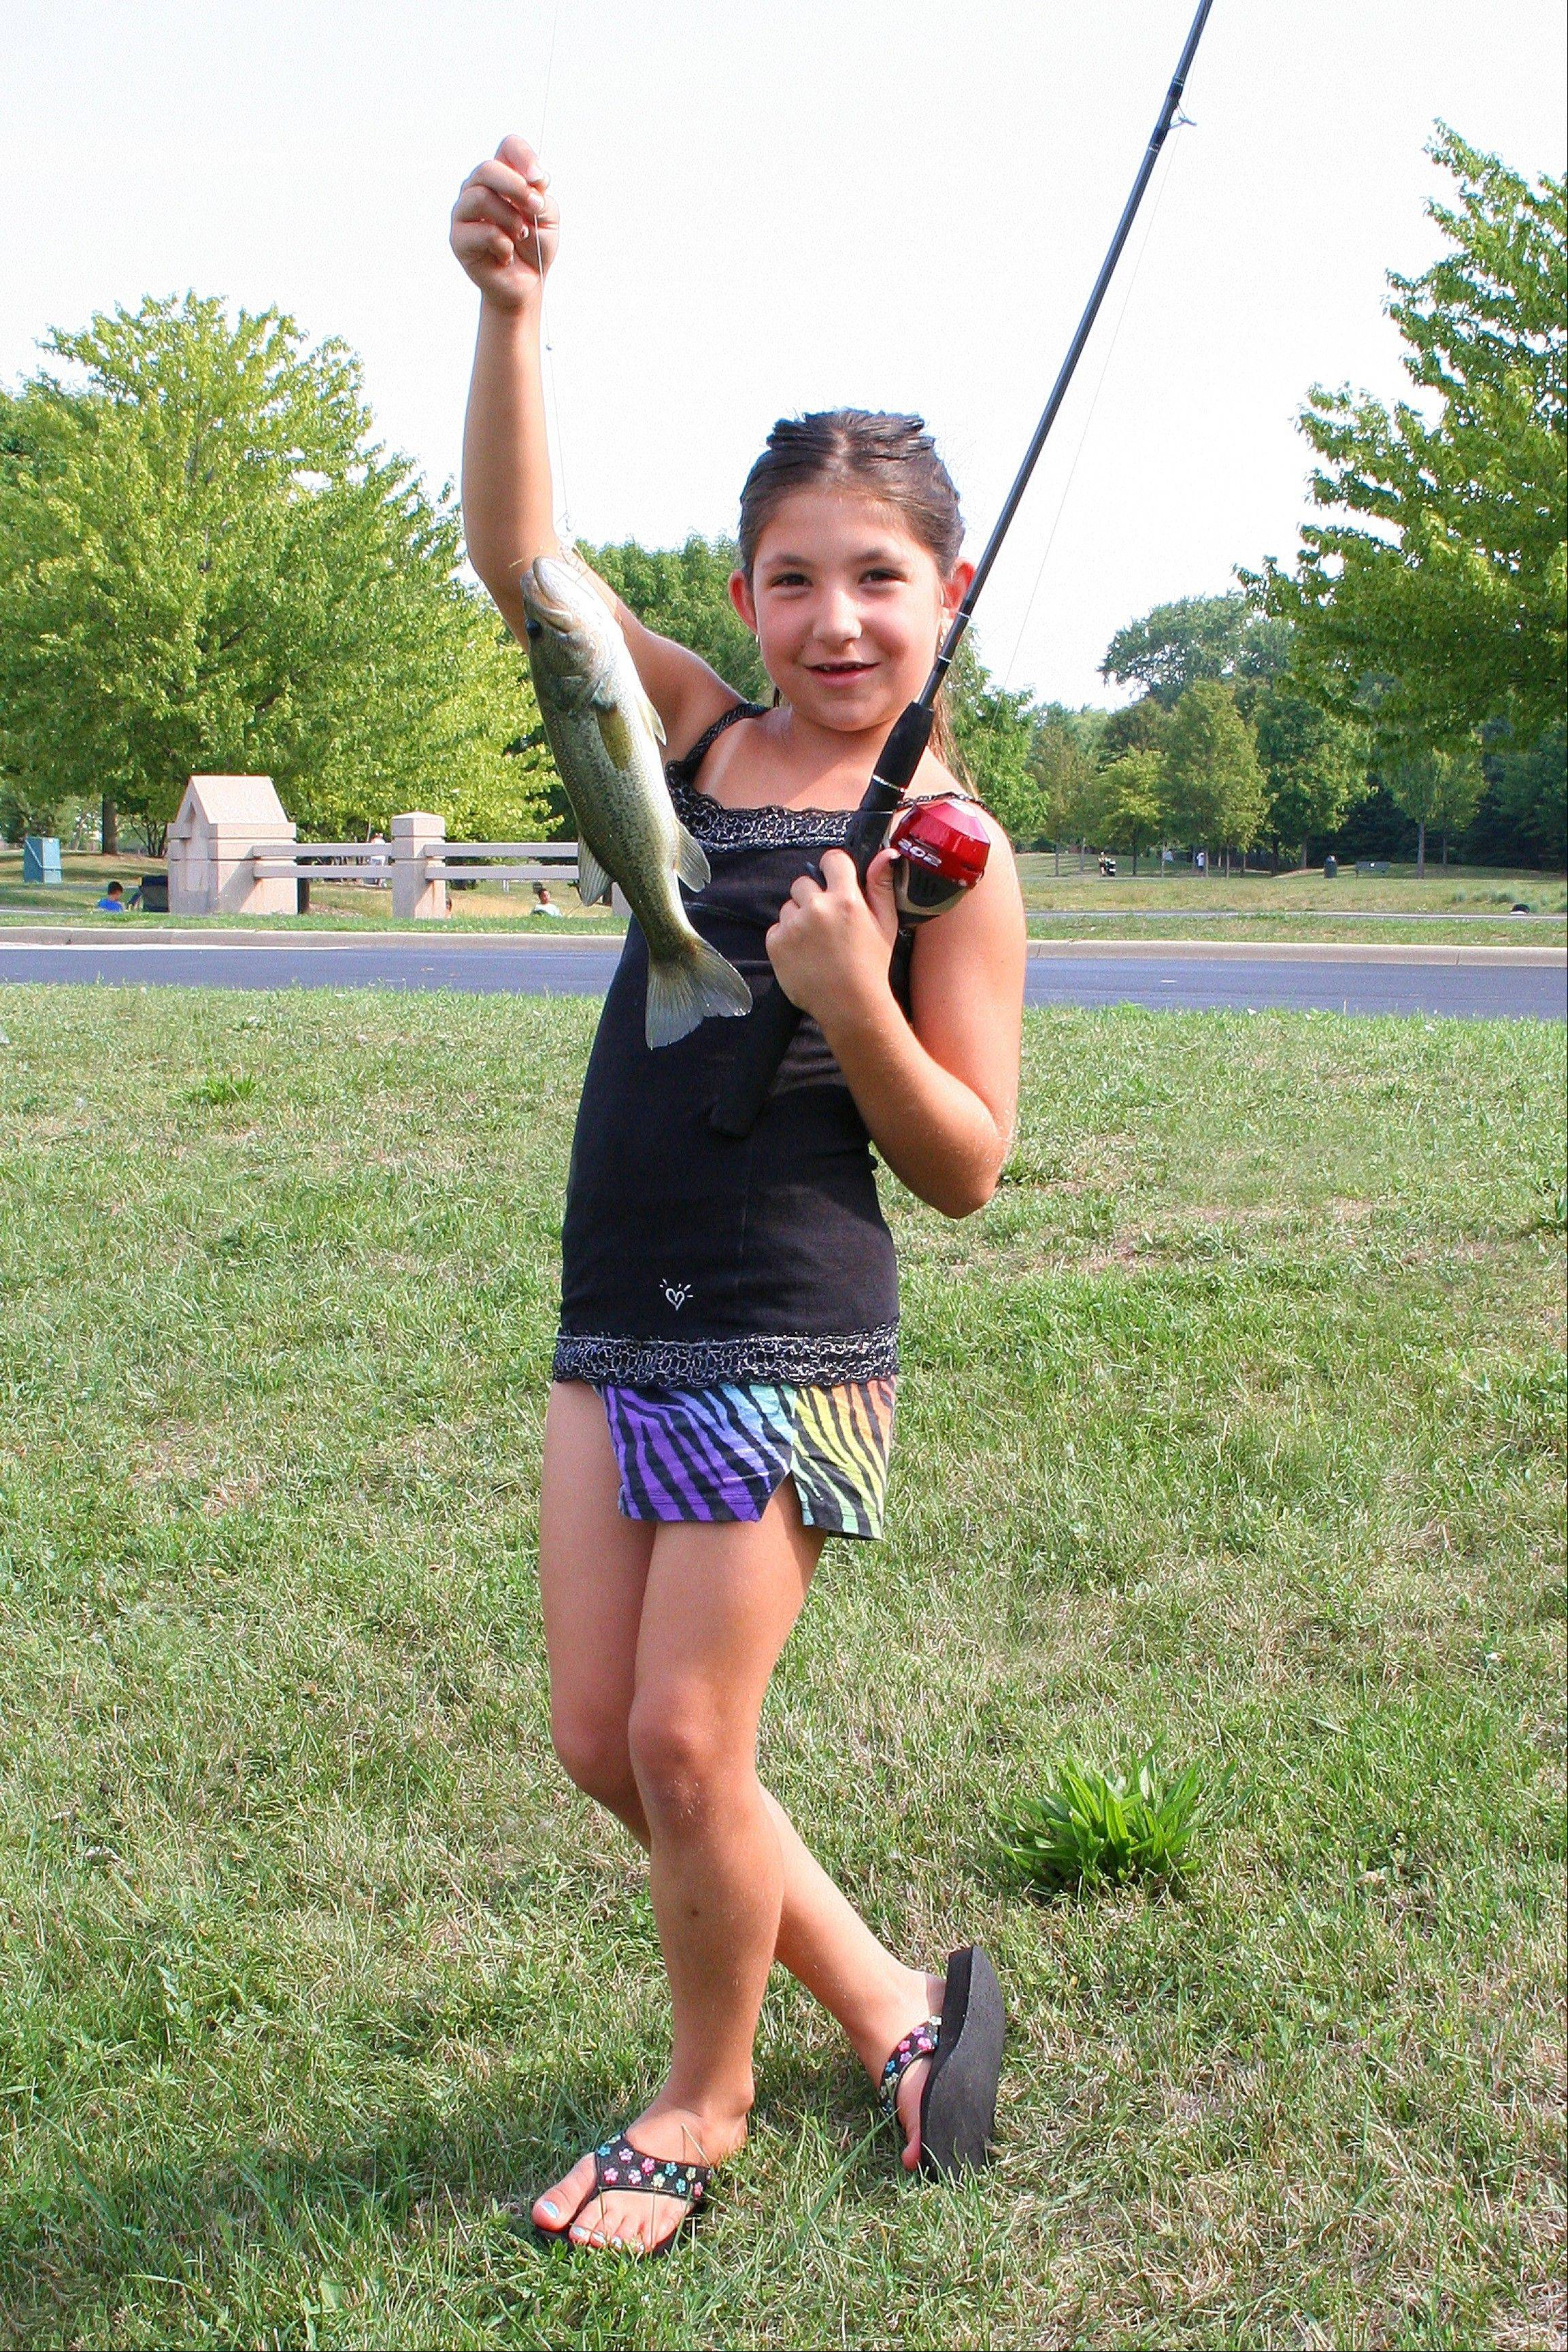 Cassidy Morisco holds up her 13-inch bass at the Family Fishing Derby at Mountain View Adventure Center on Aug. 4. It was not the biggest fish in her age group, but she also caught the smallest fish in the 6-8 age group, a 3.75-inch sunfish.